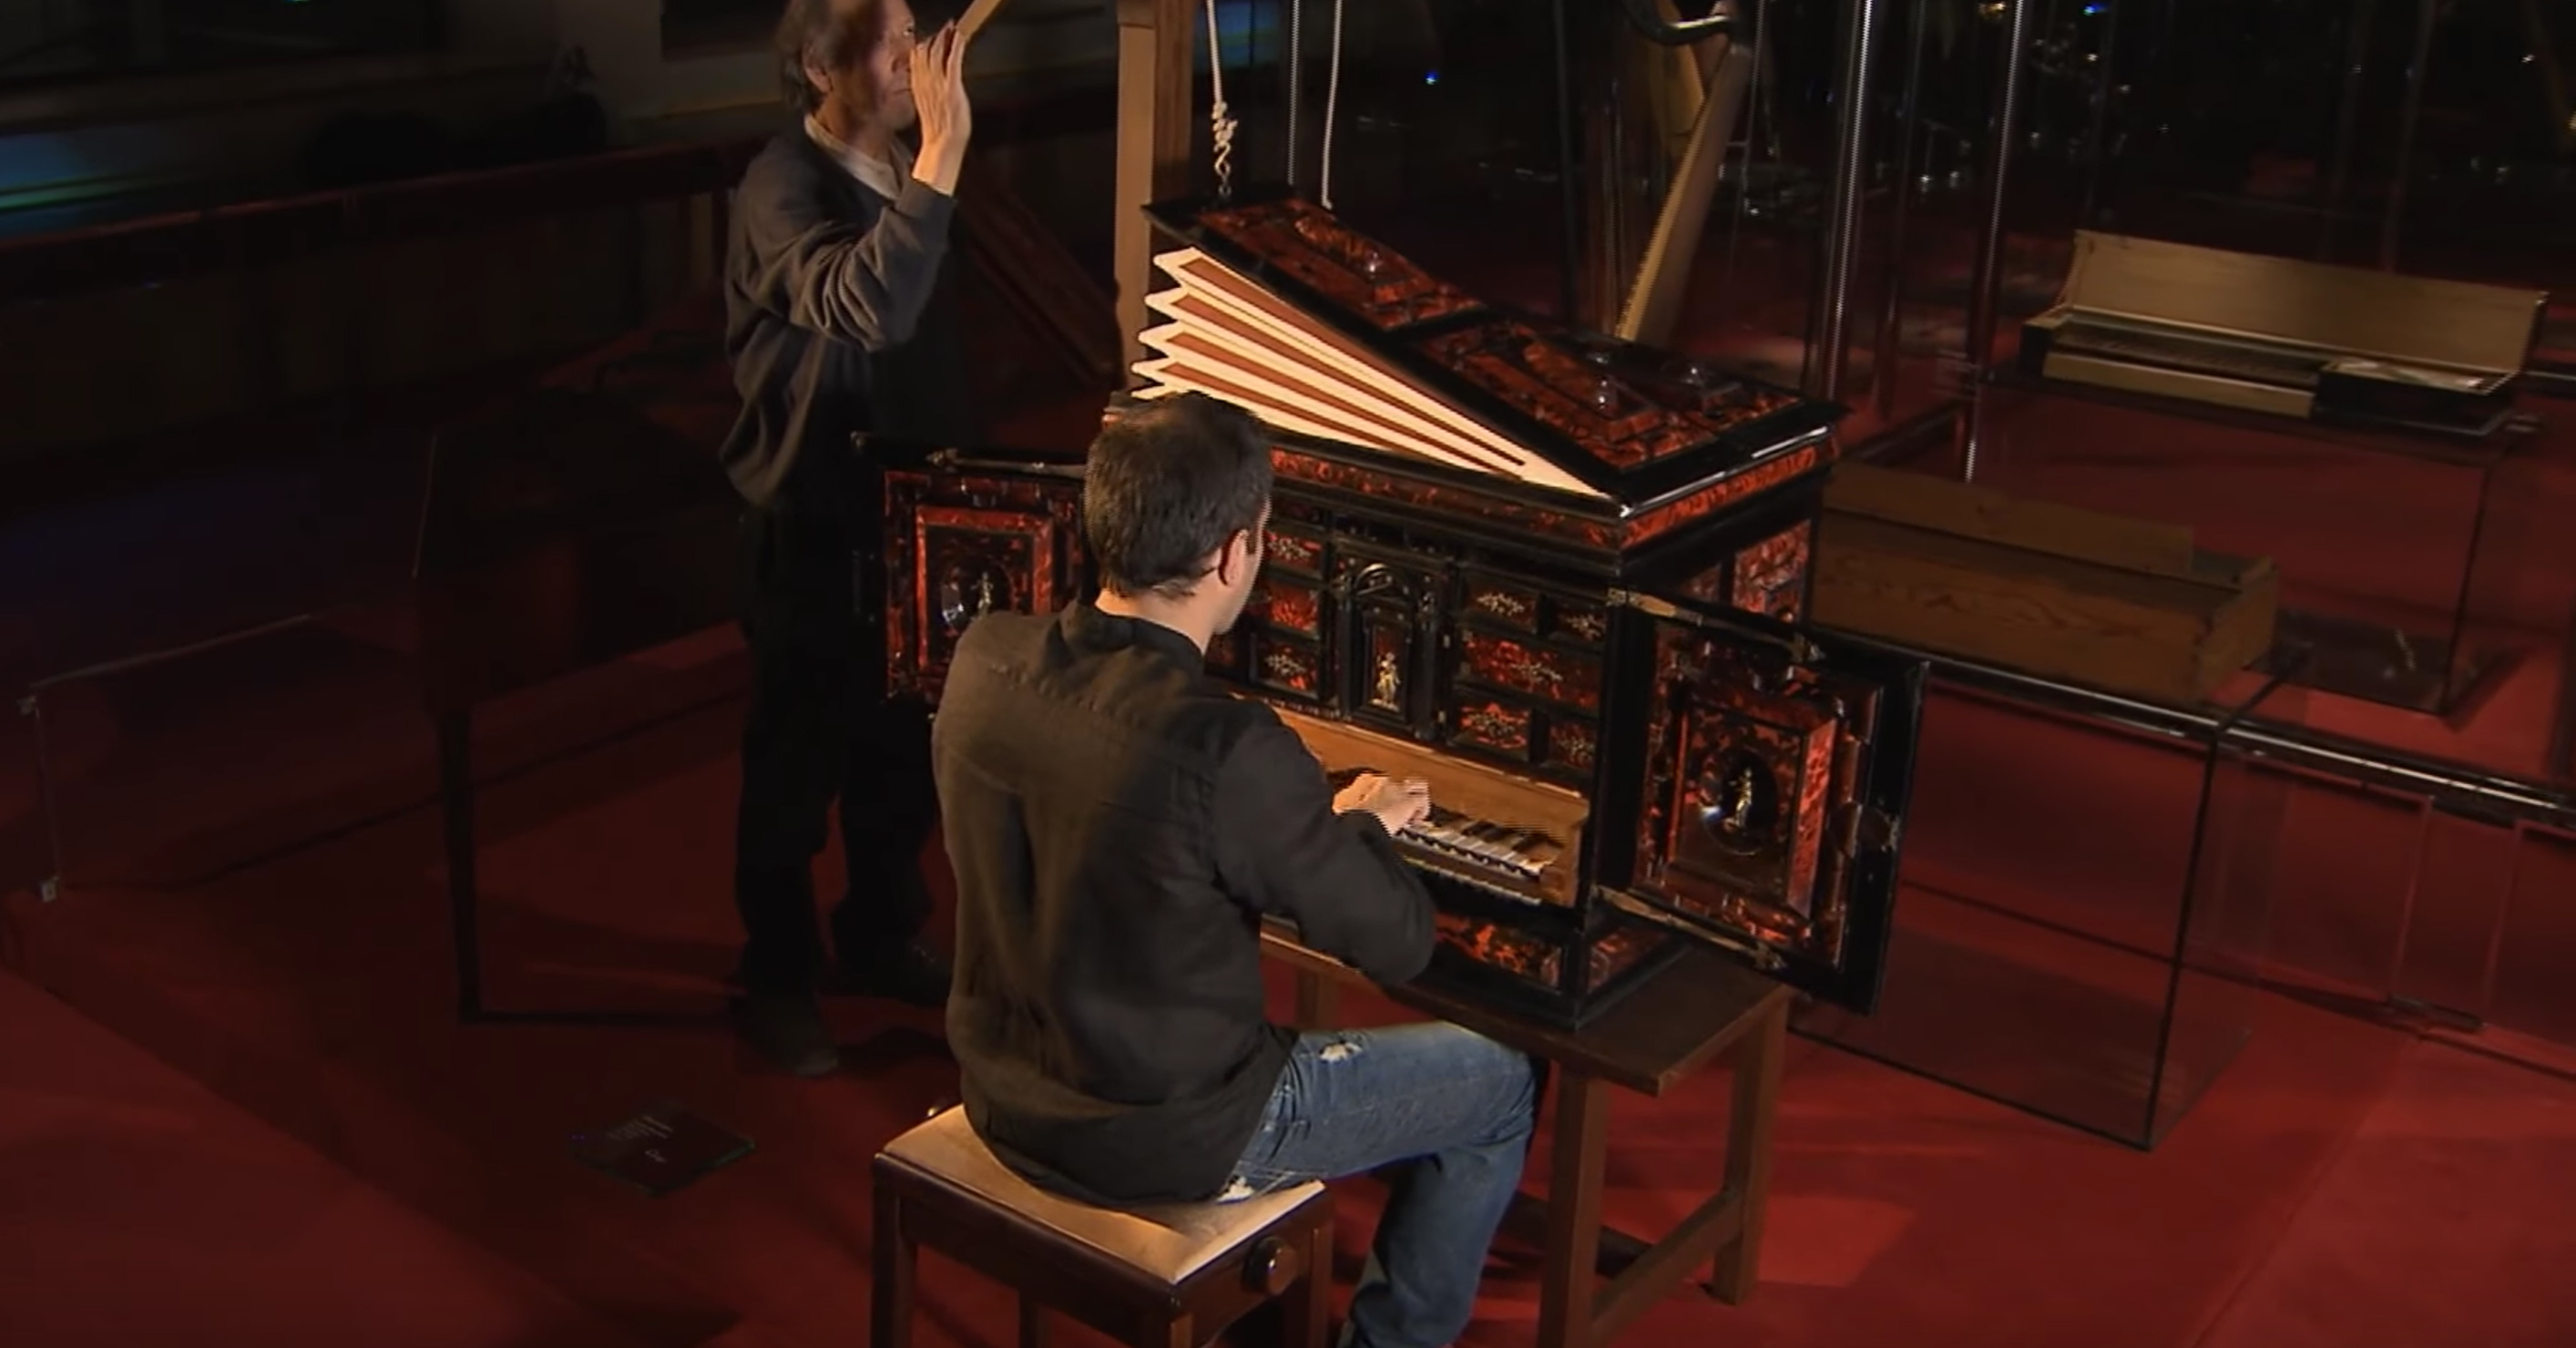 The Hauslaib claviorgan (Barcelona), a unique instrument in the world